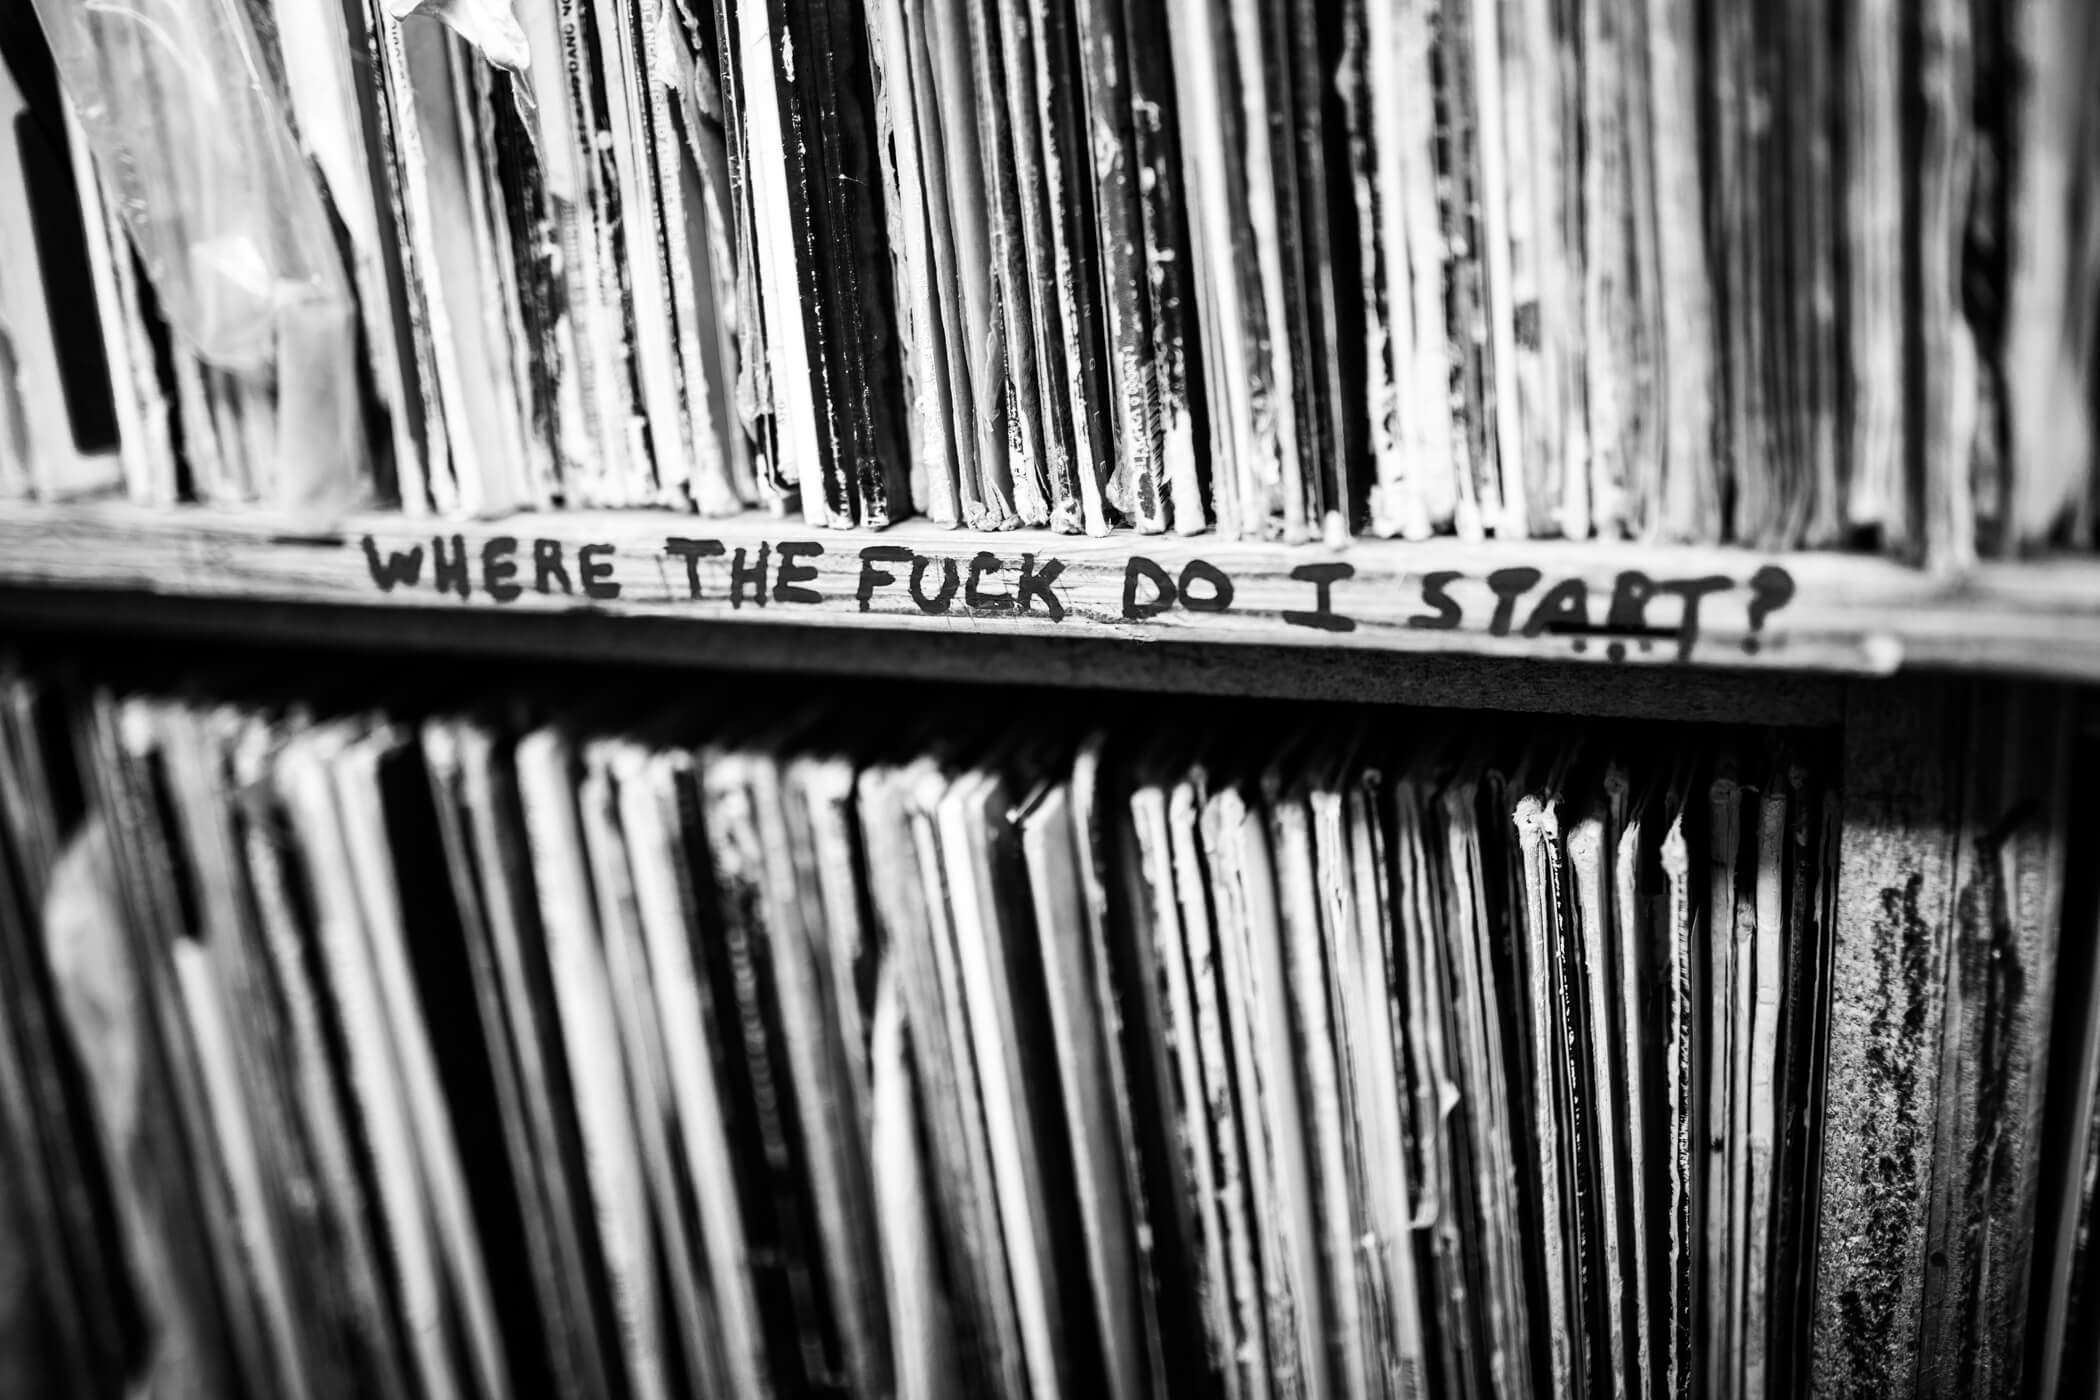 Weird wax: The strangest stories from the world of vinyl in 2016